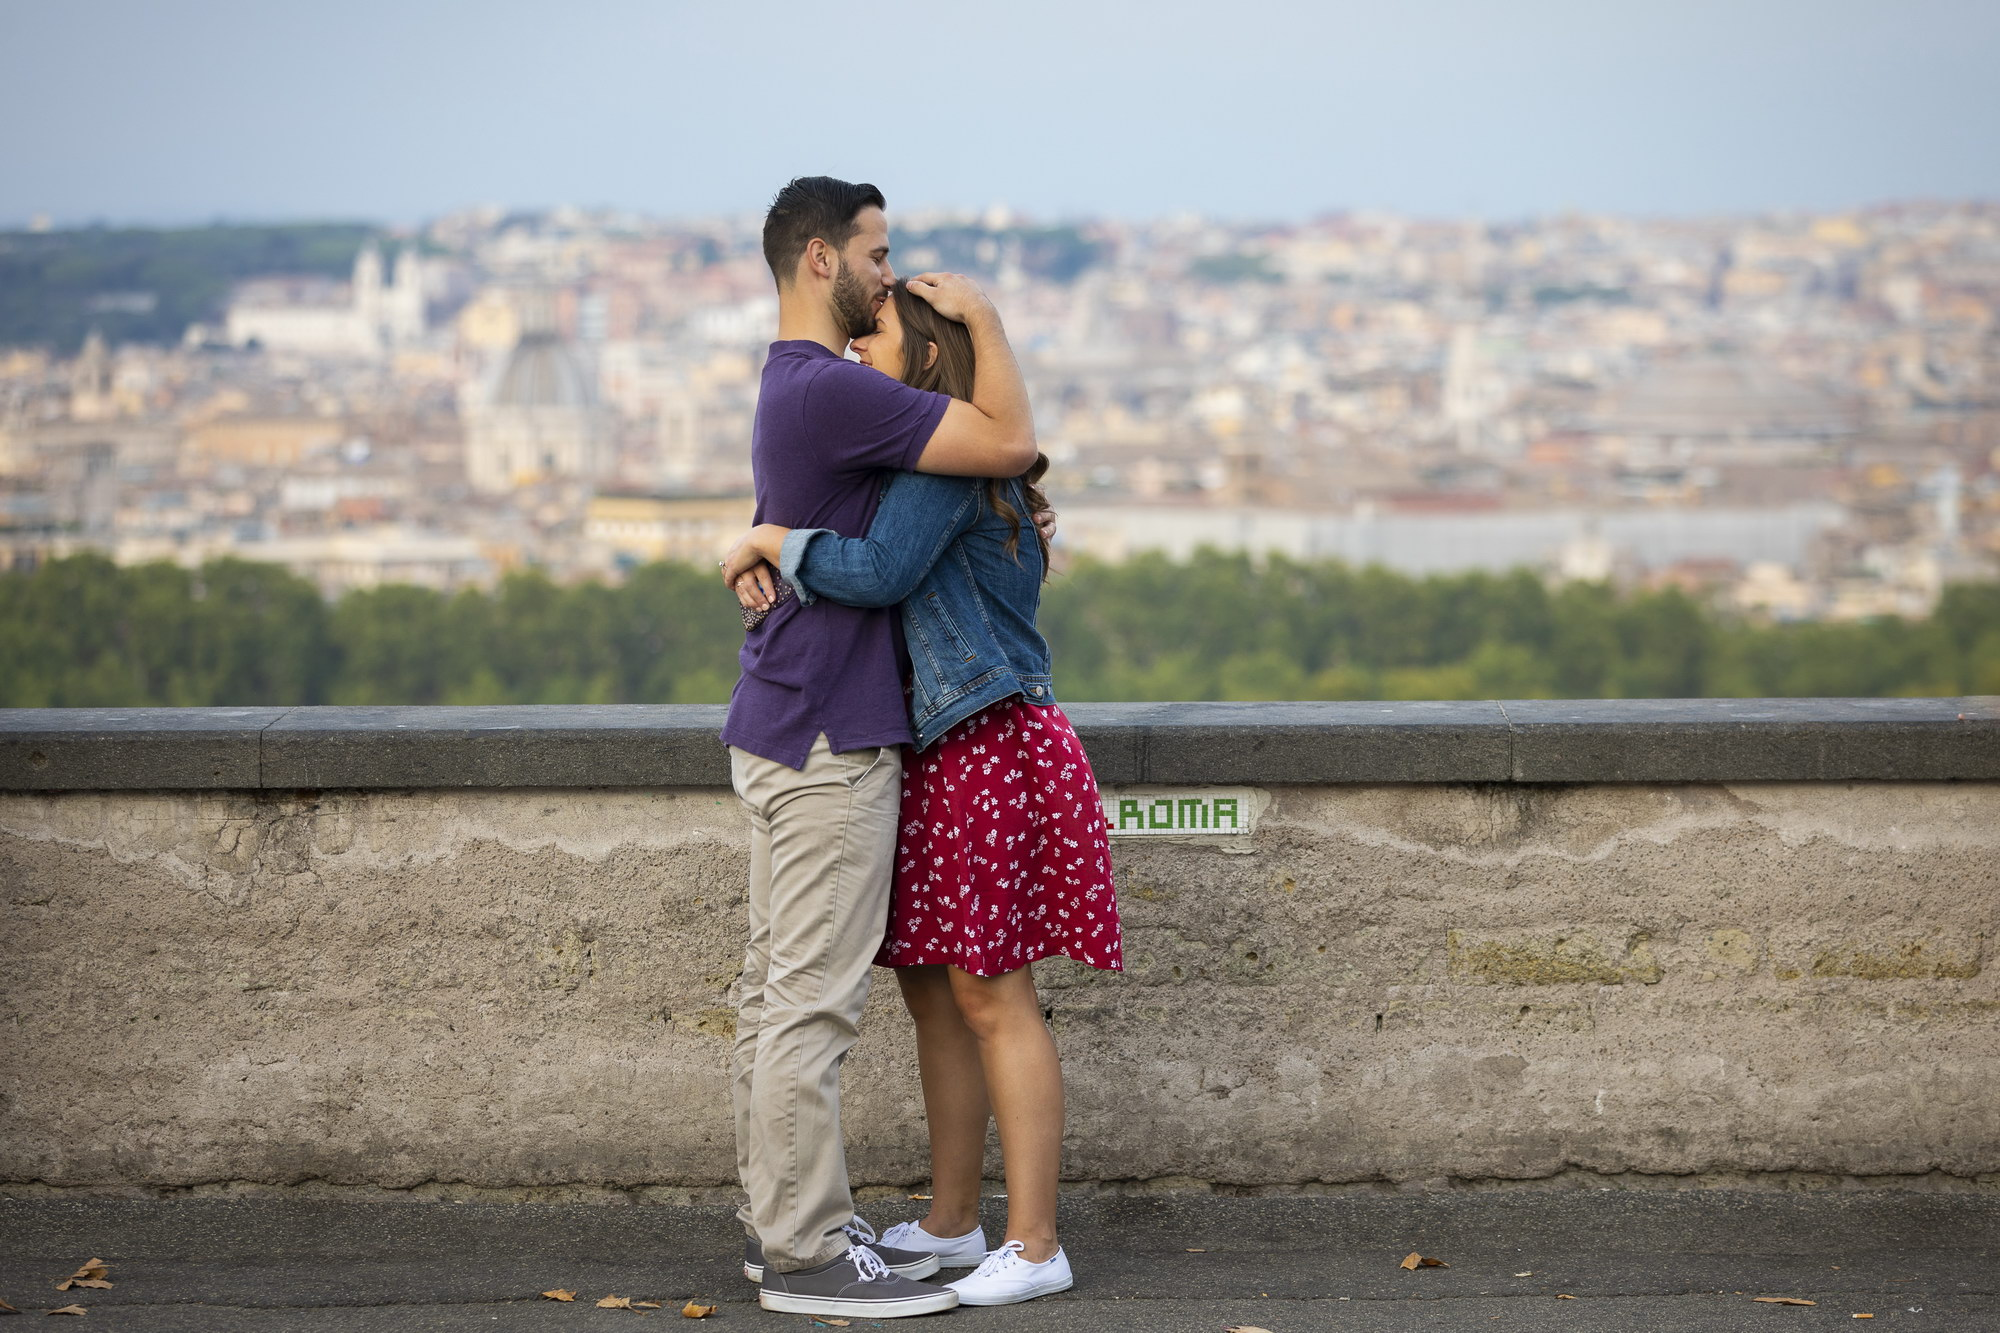 Roman Wedding Proposal With a View Andrea Matone03